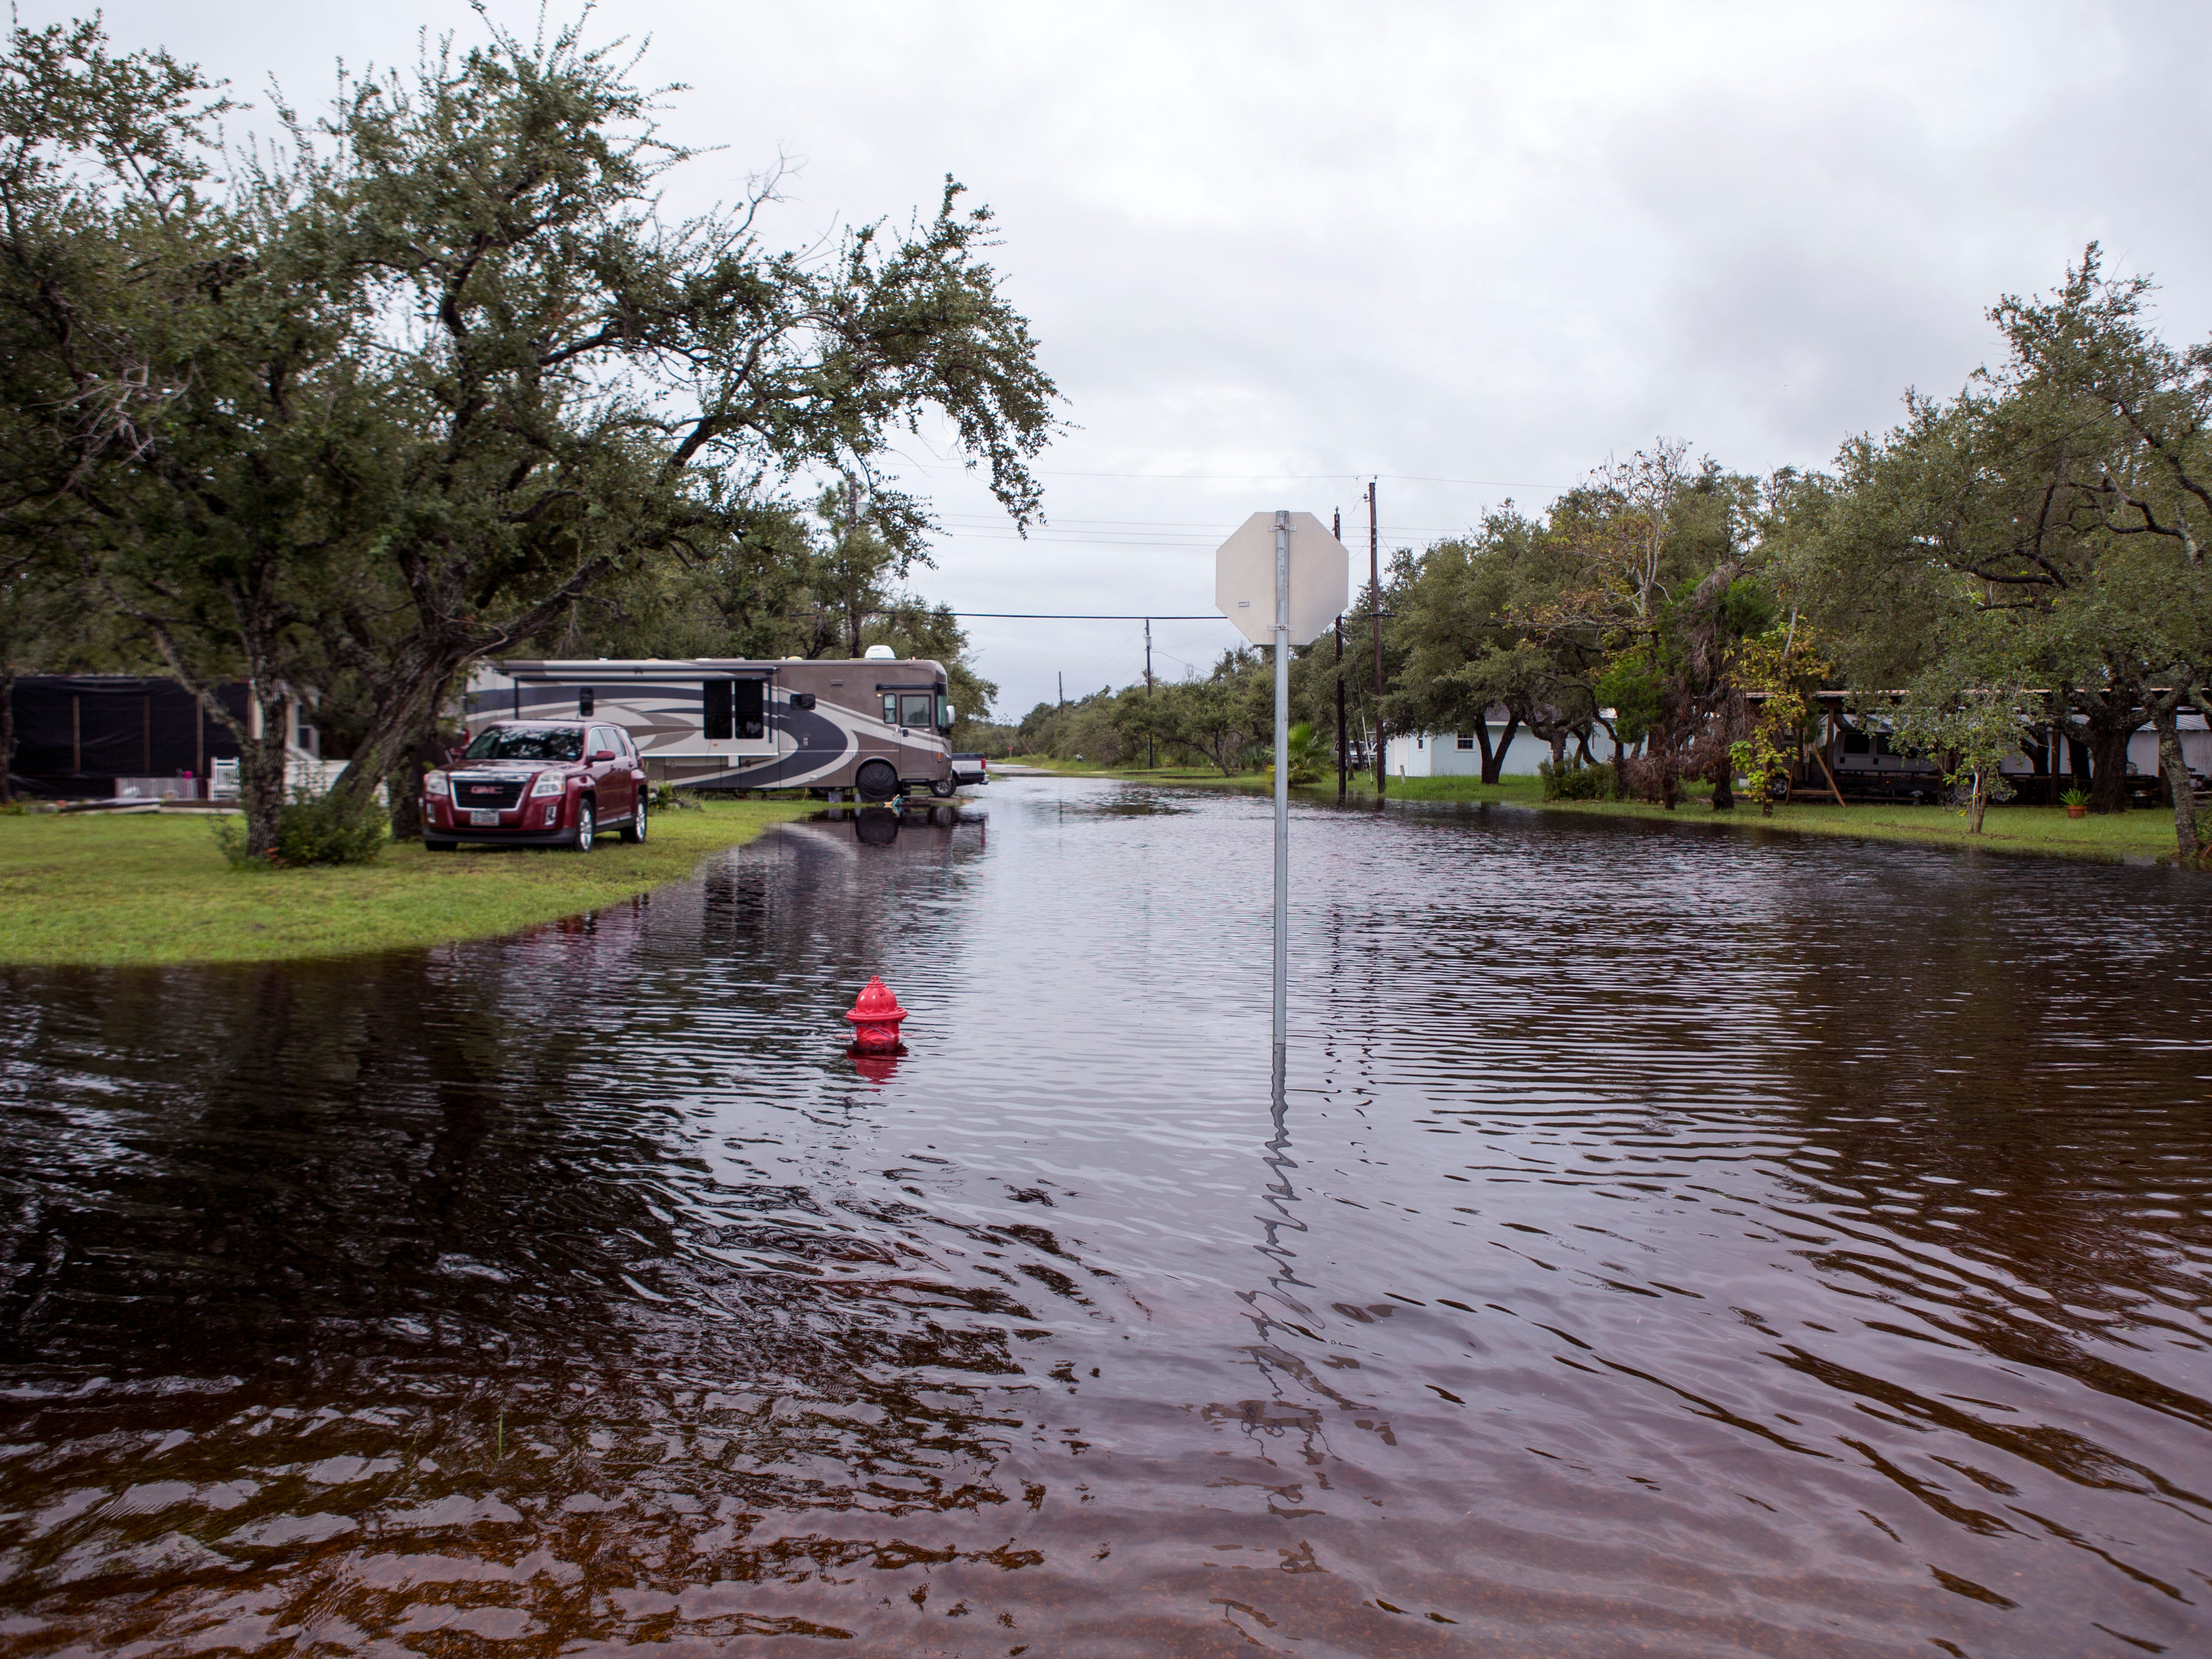 Roads adjacent Raintree RV Park in Rockport were flooded Saturday, September 15, 2018 due to high water.